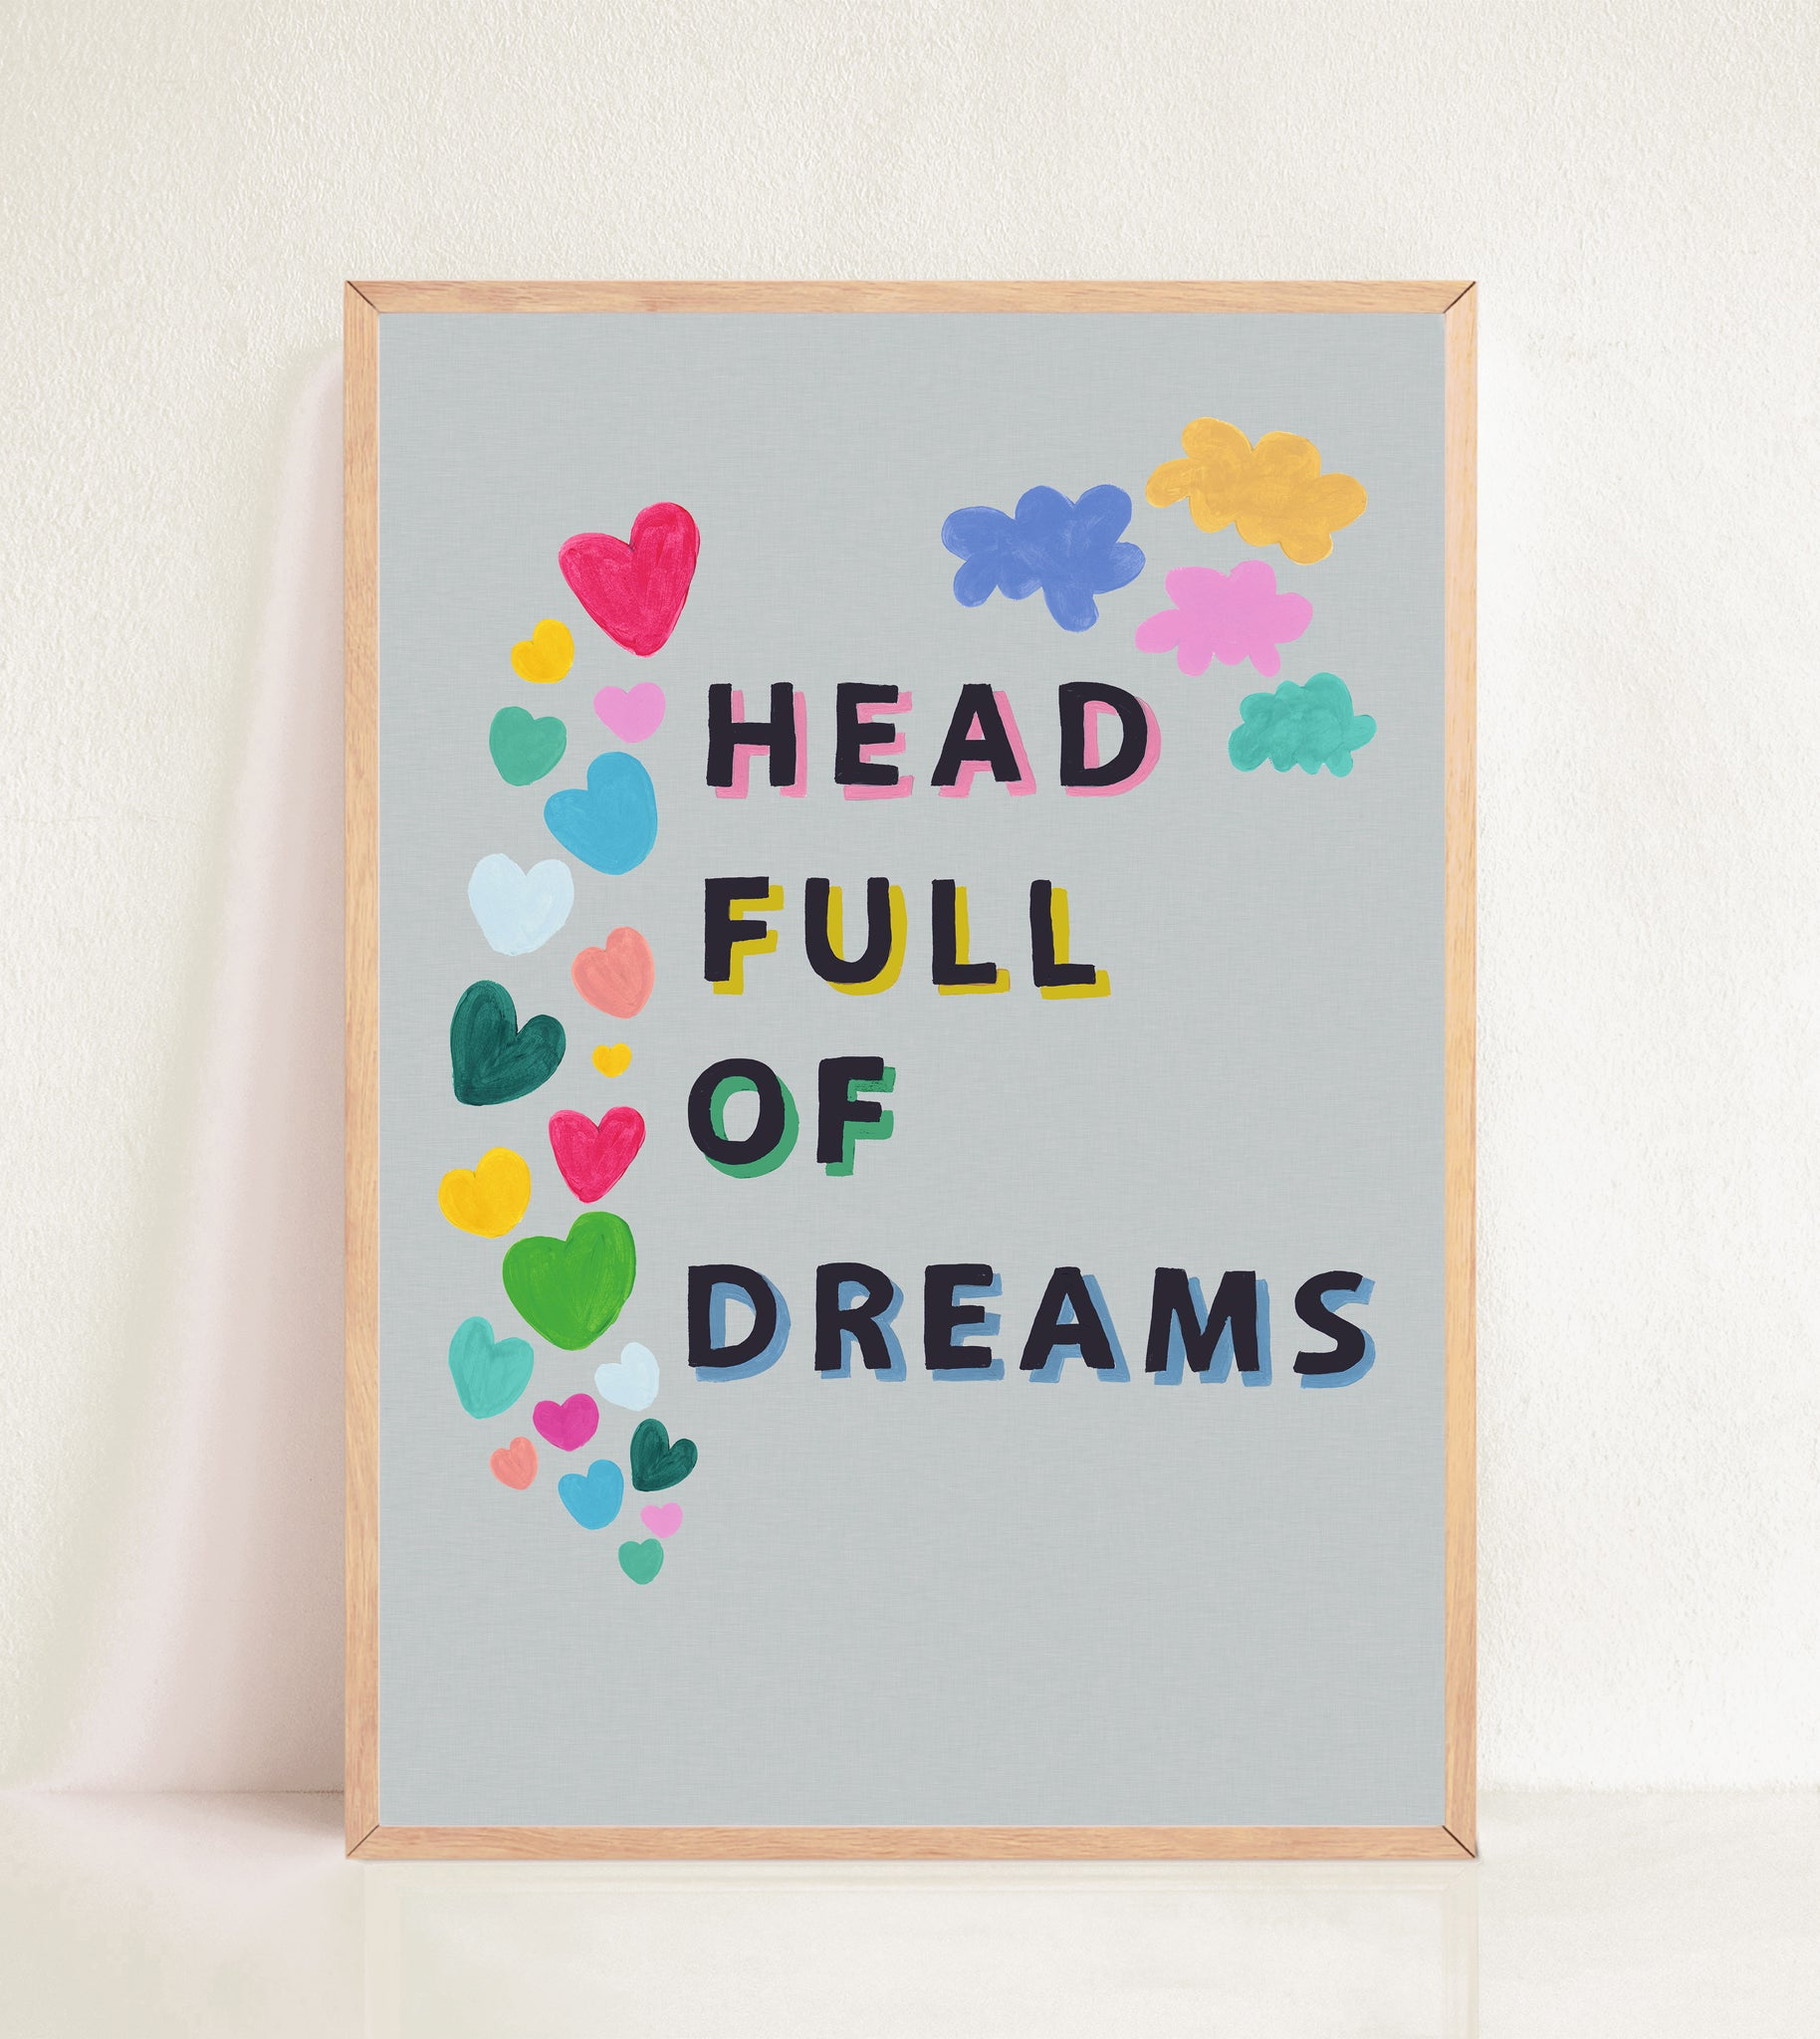 Head Full of Dreams - Grey Linen Effect